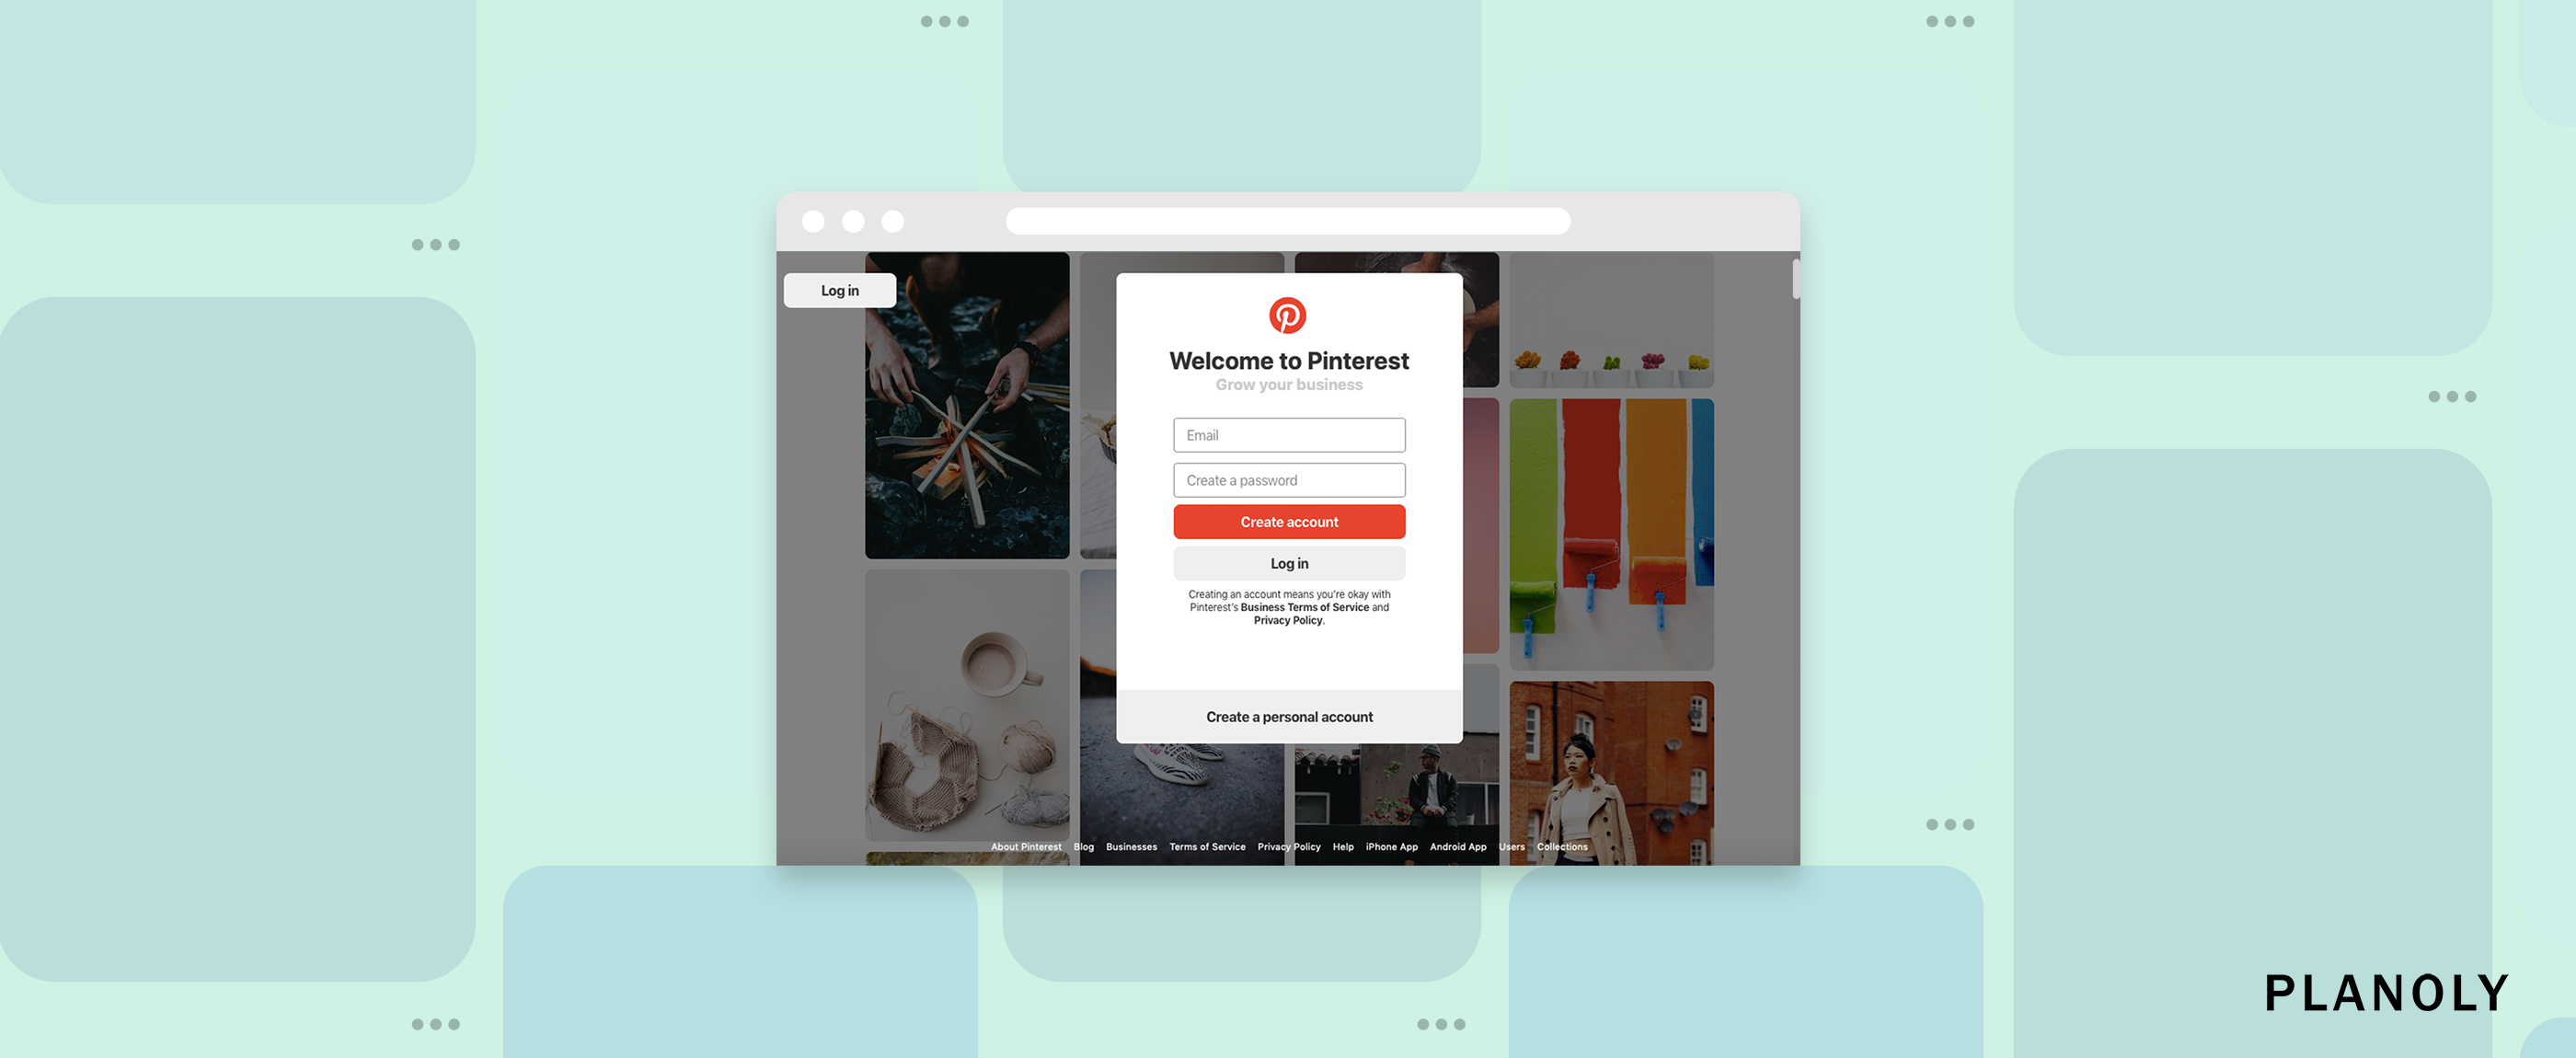 PLANOLY-Blog-Post-5-Reasons-Why-You-Should-Switch-to-A-Business-Account-on-Pinterest-Banner-2